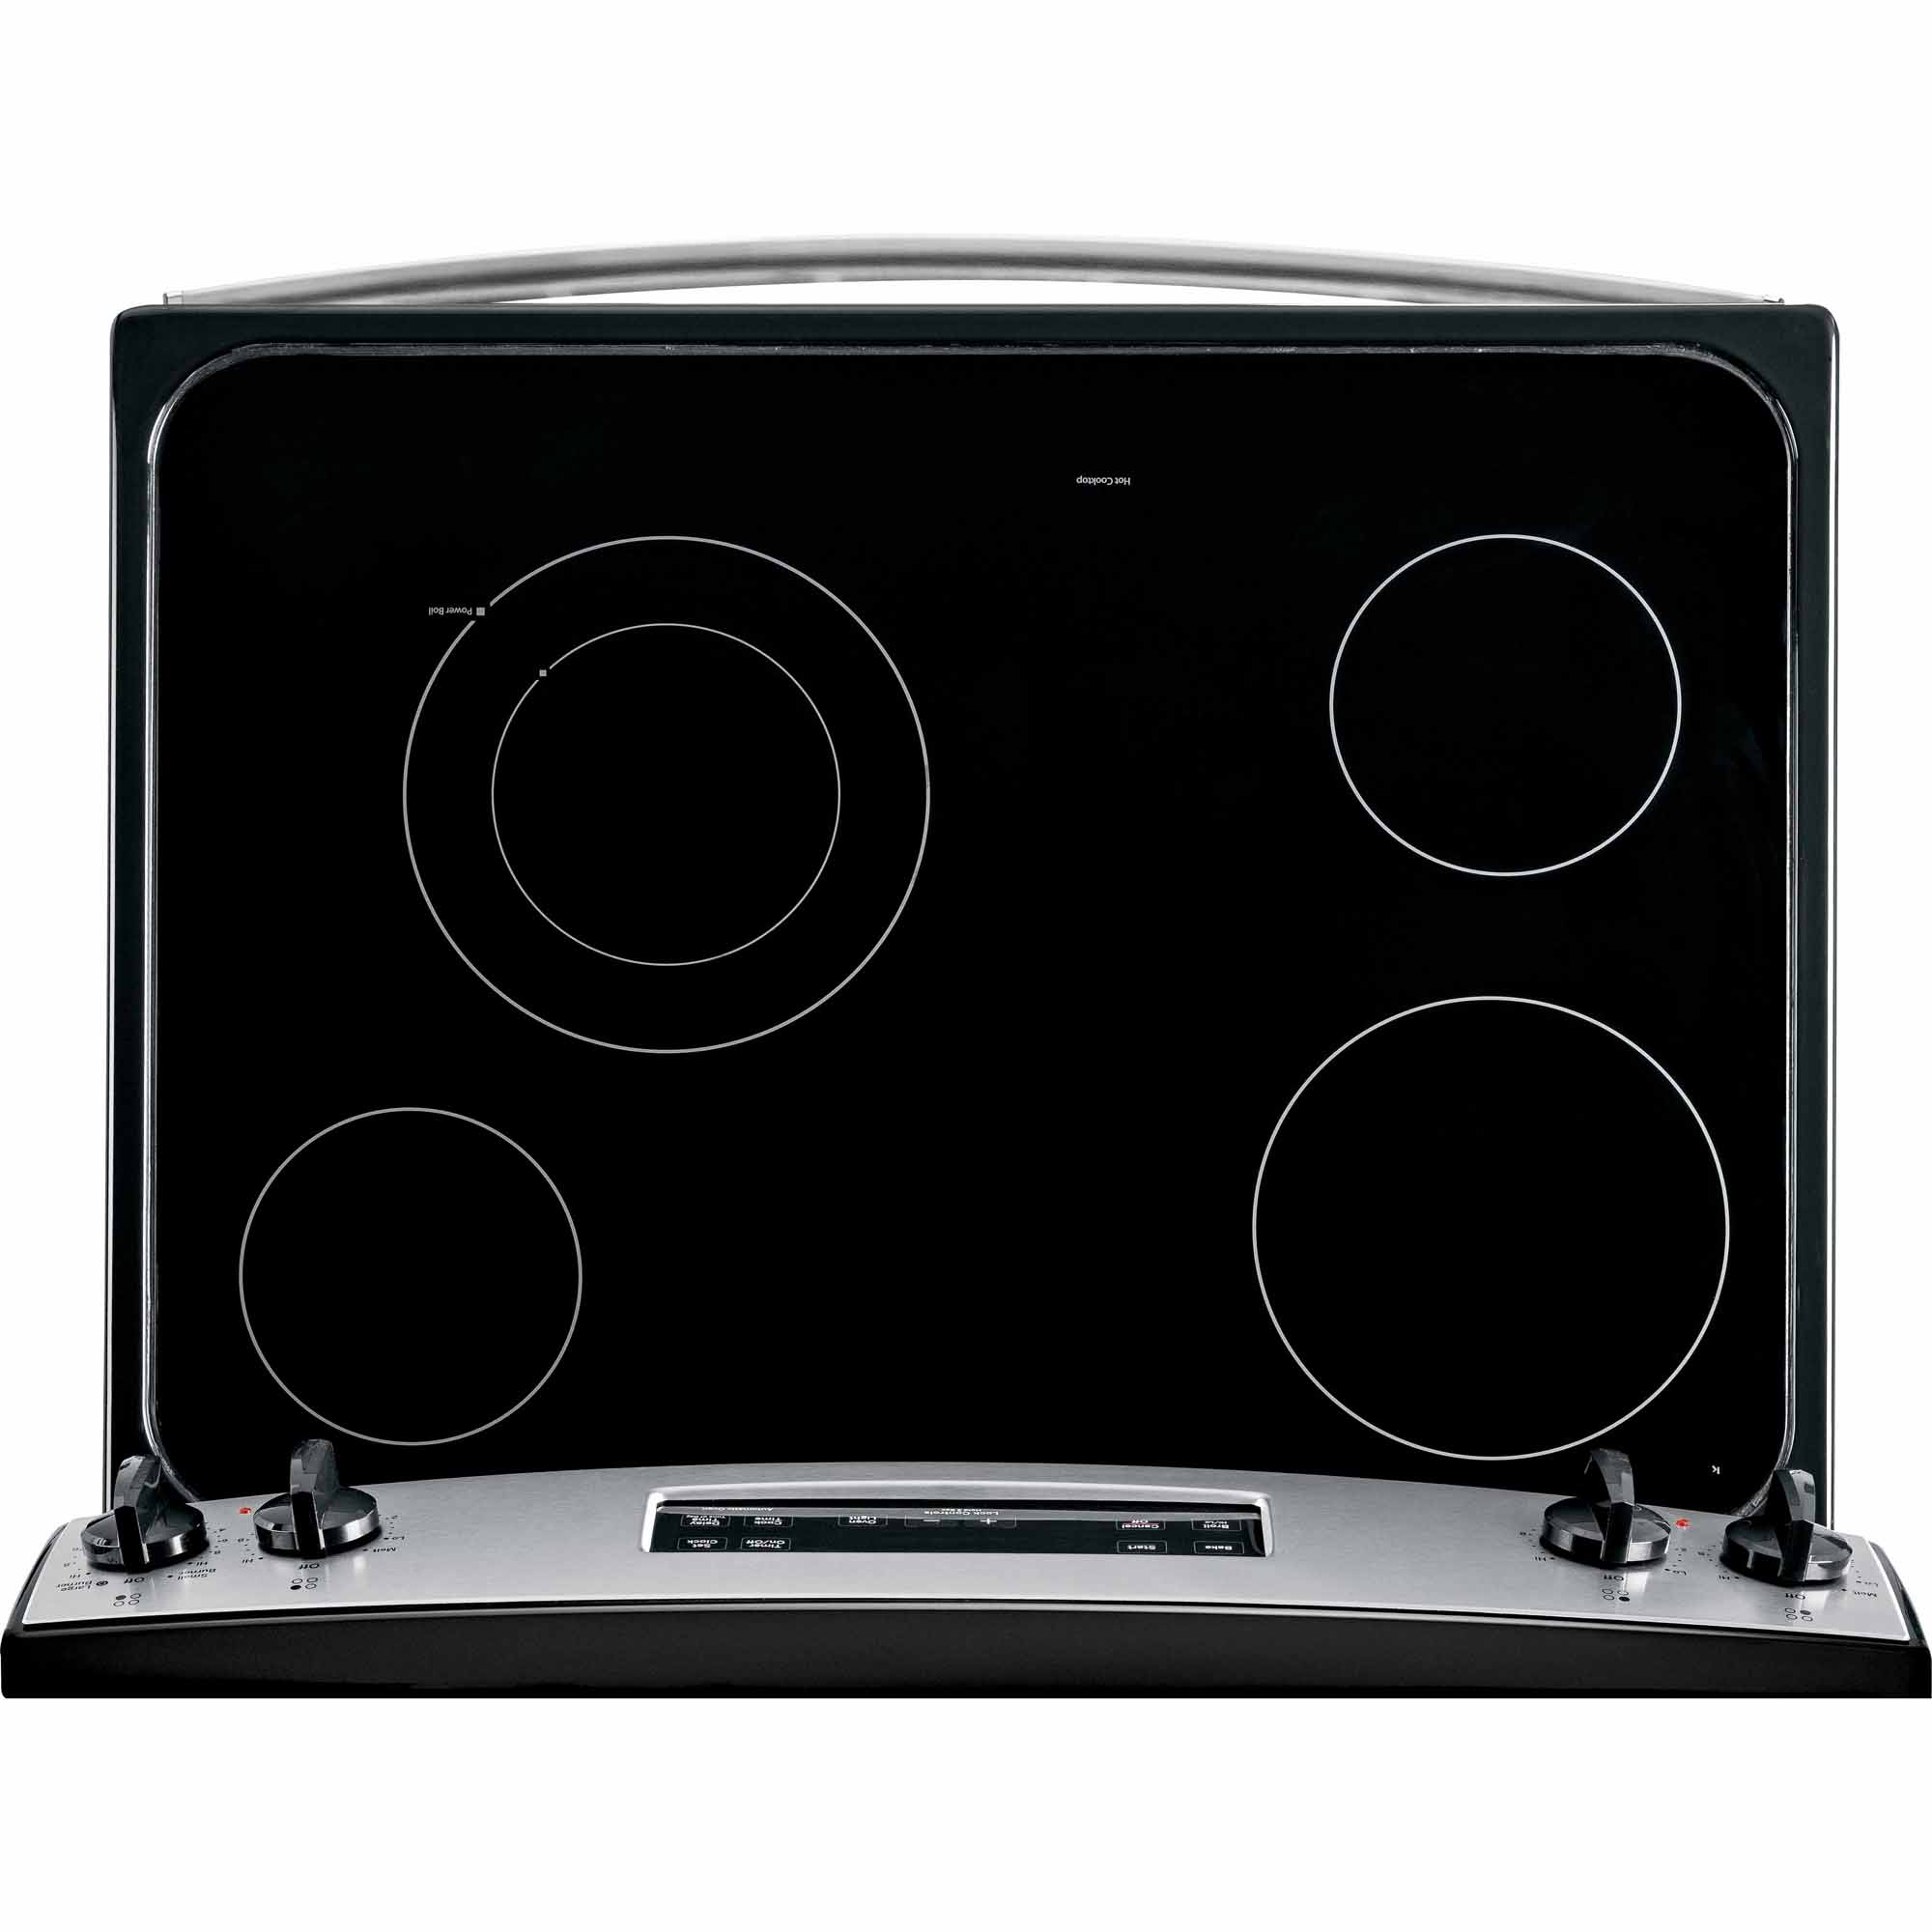 GE Appliances JB630RFSS 5.3 cu. ft. Electric Range - Stainless